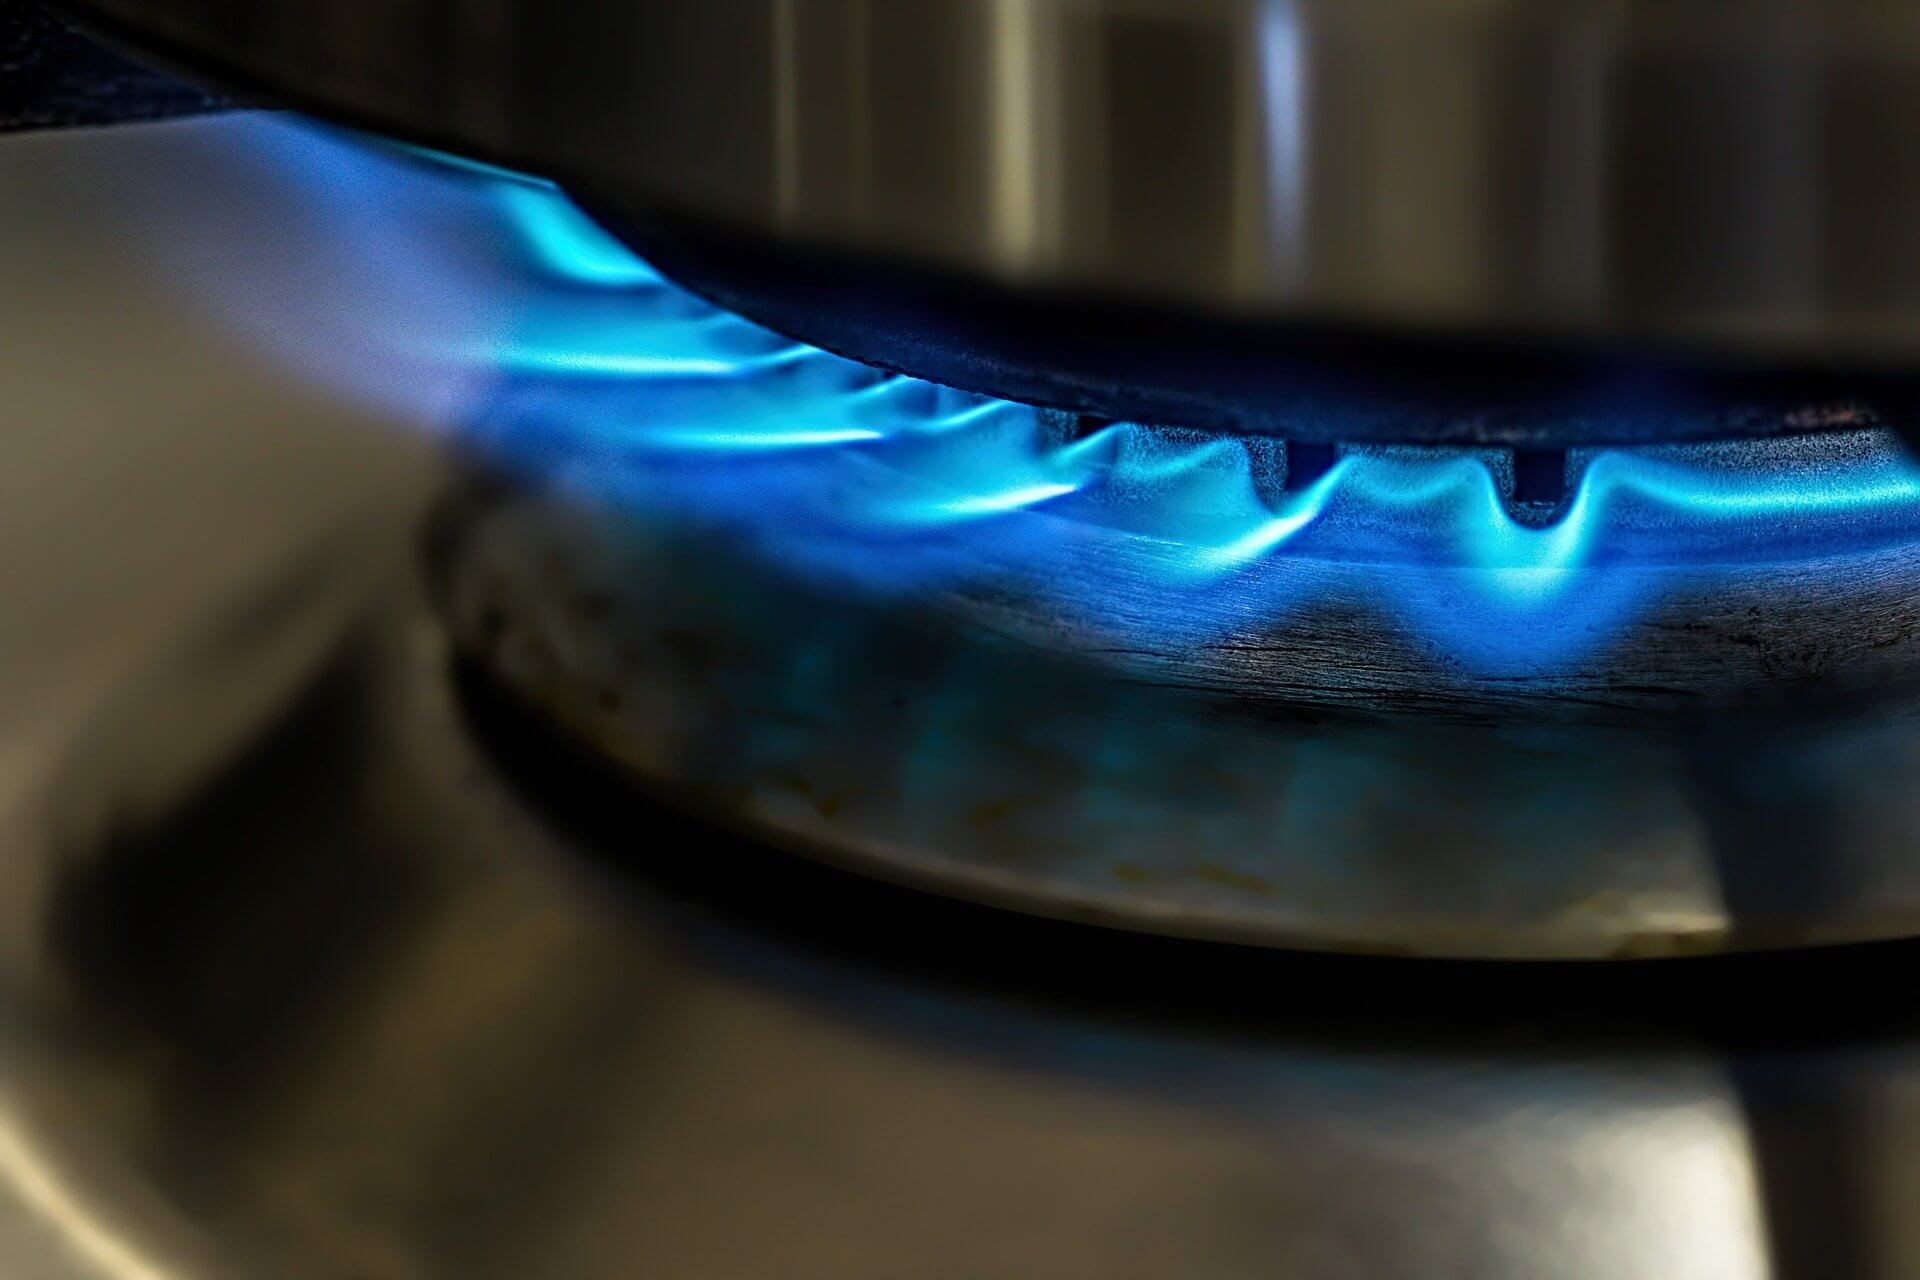 During the holidays, we are all cooking more than we normally do. Make sure you turn all handles to the back of the stove to prevent hot oils or water from spilling.